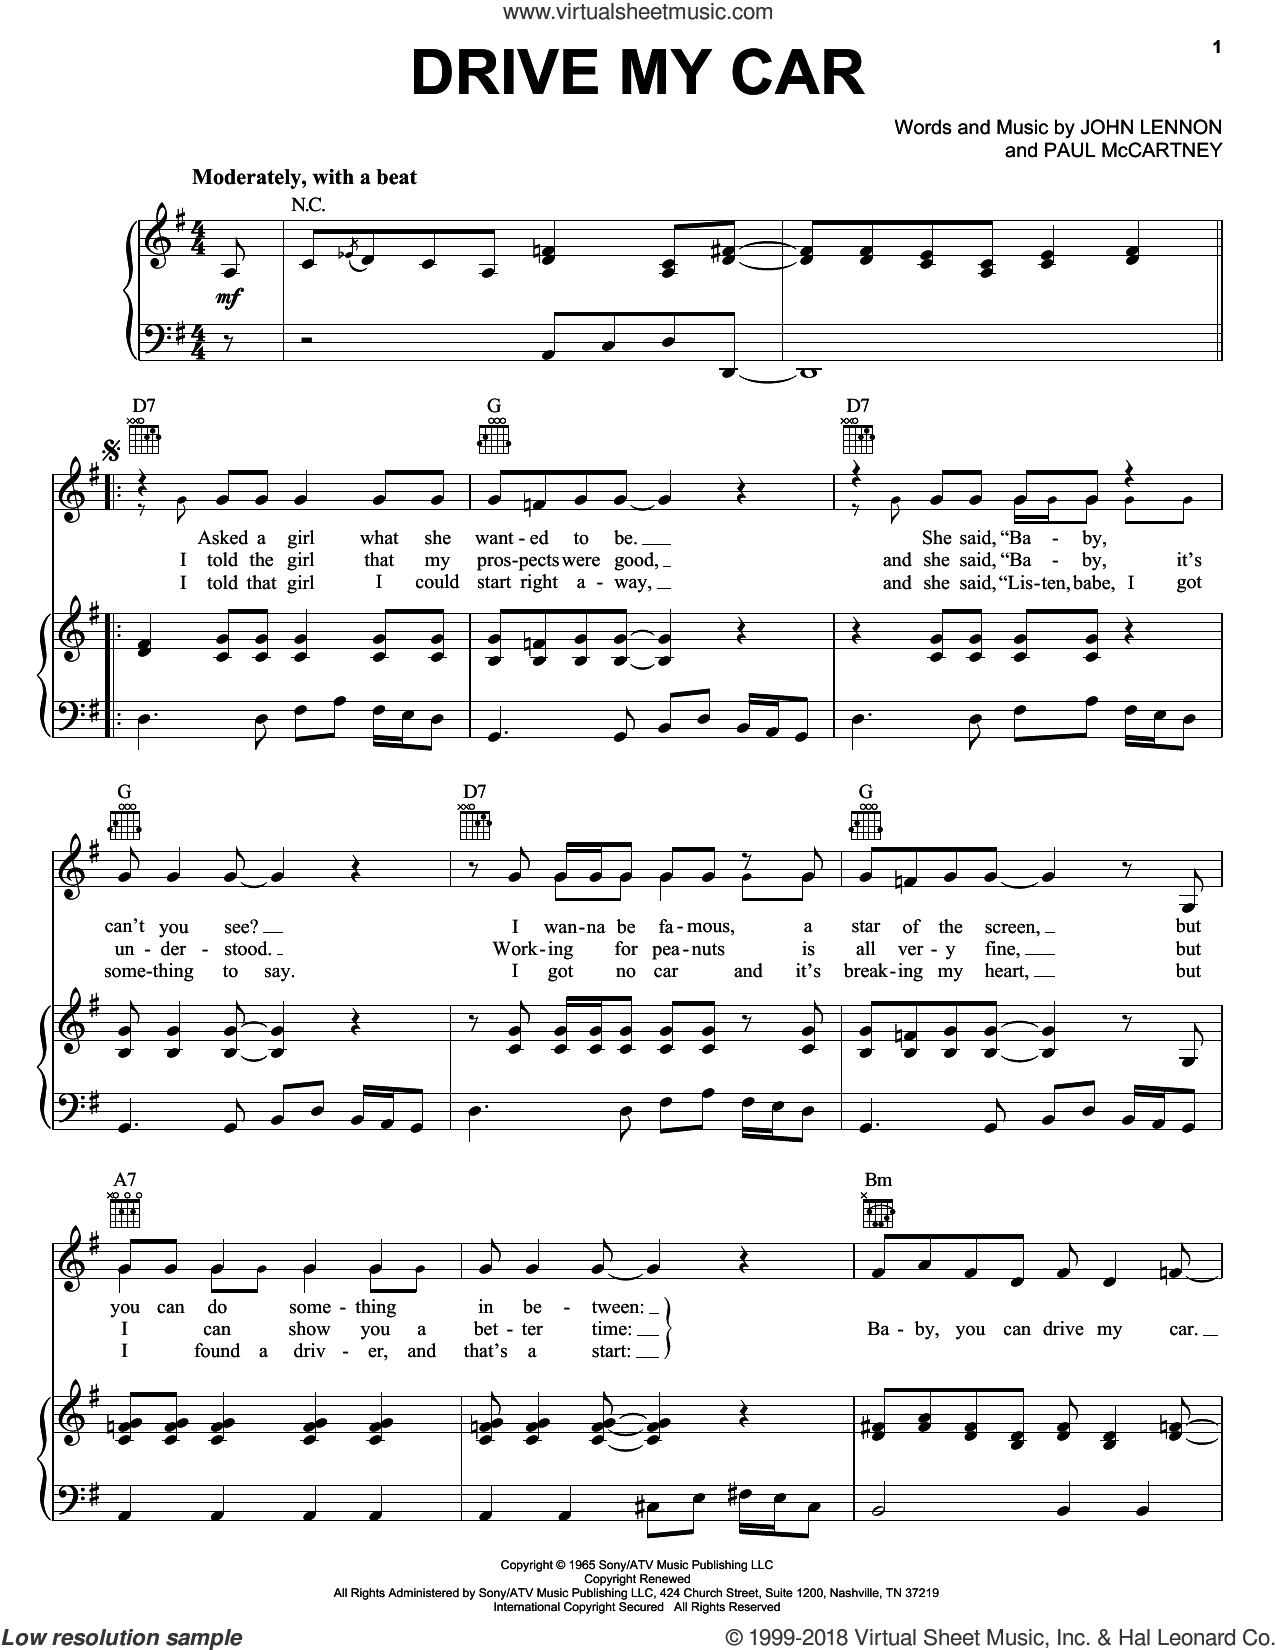 Drive My Car sheet music for voice, piano or guitar by Paul McCartney